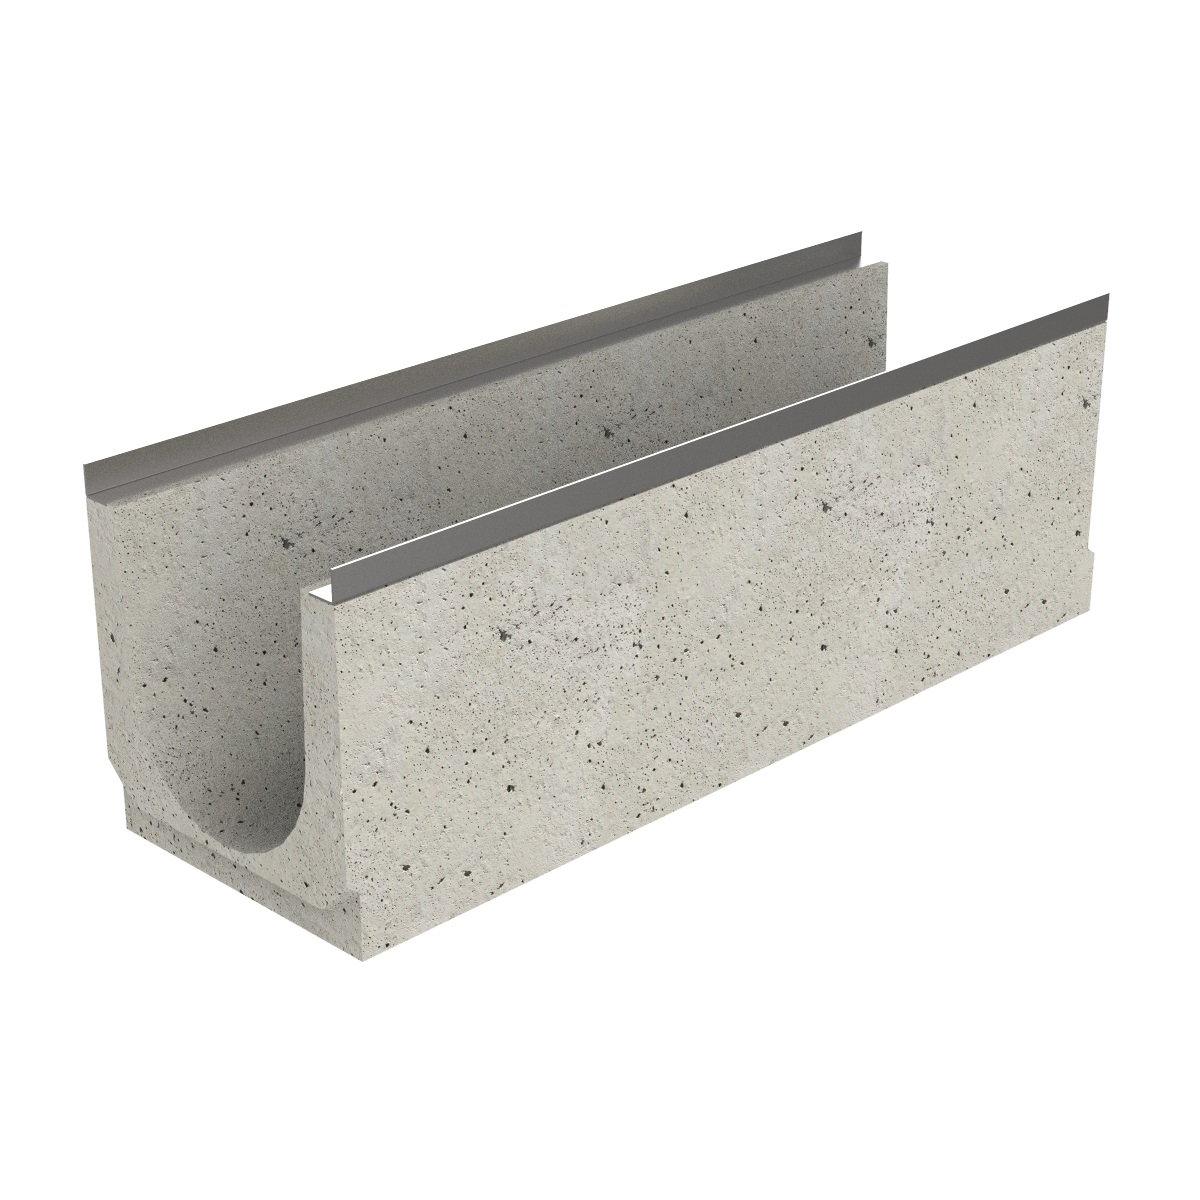 Premanufactured channel of concrete